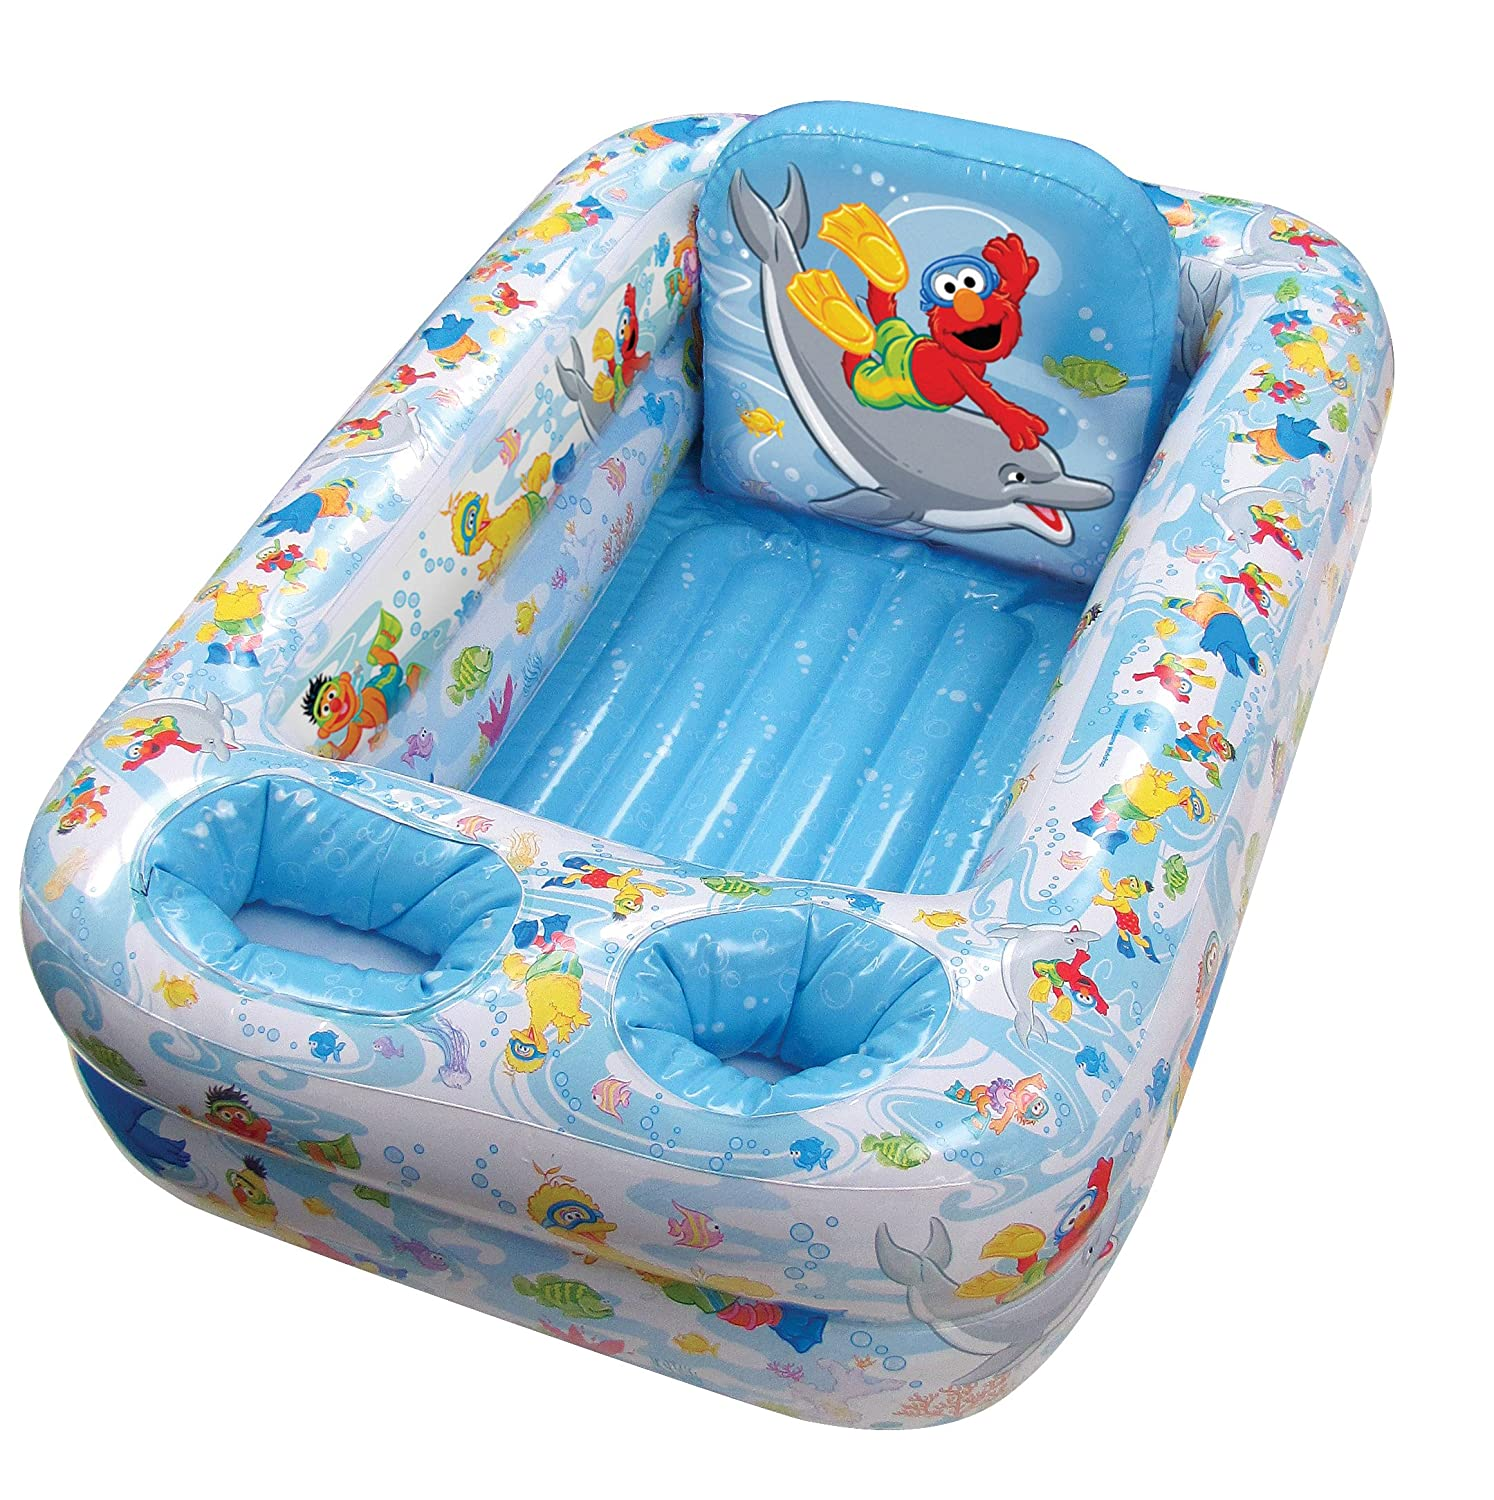 Amazon.com : Sesame Street Inflatable Safety Bathtub, Blue : Baby ...